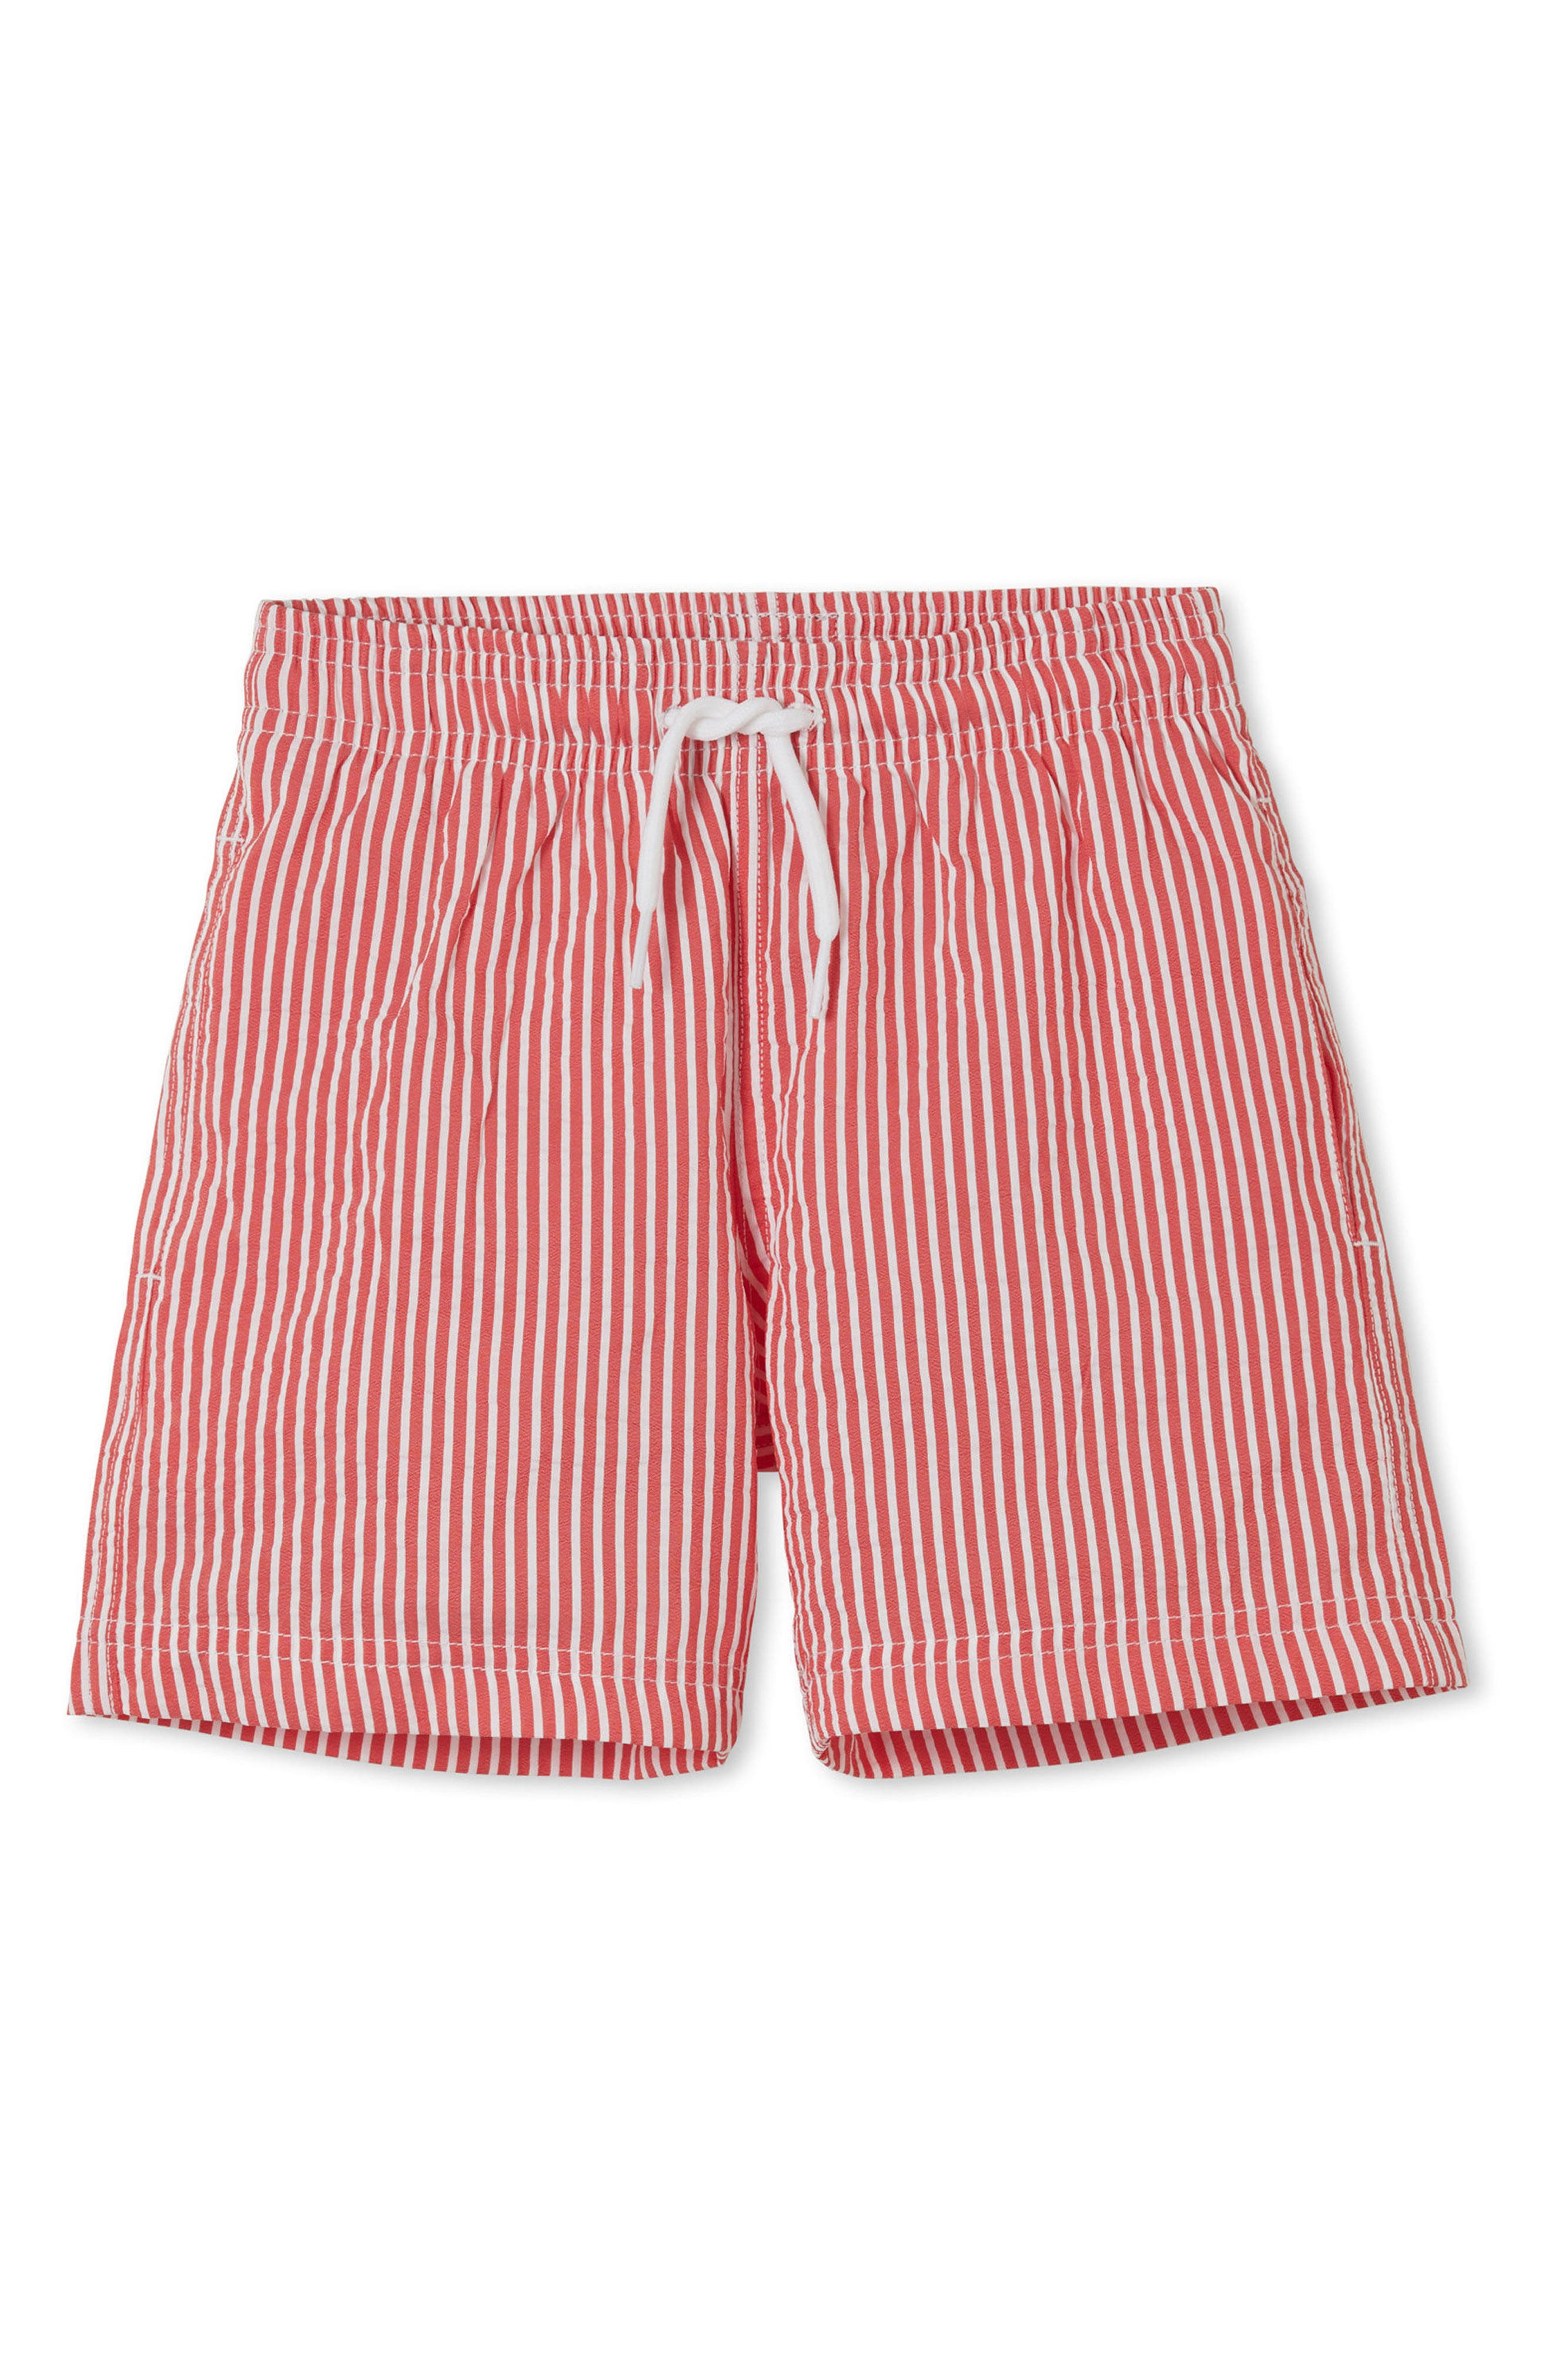 Red Stripe Swim Trunks,                             Main thumbnail 1, color,                             600